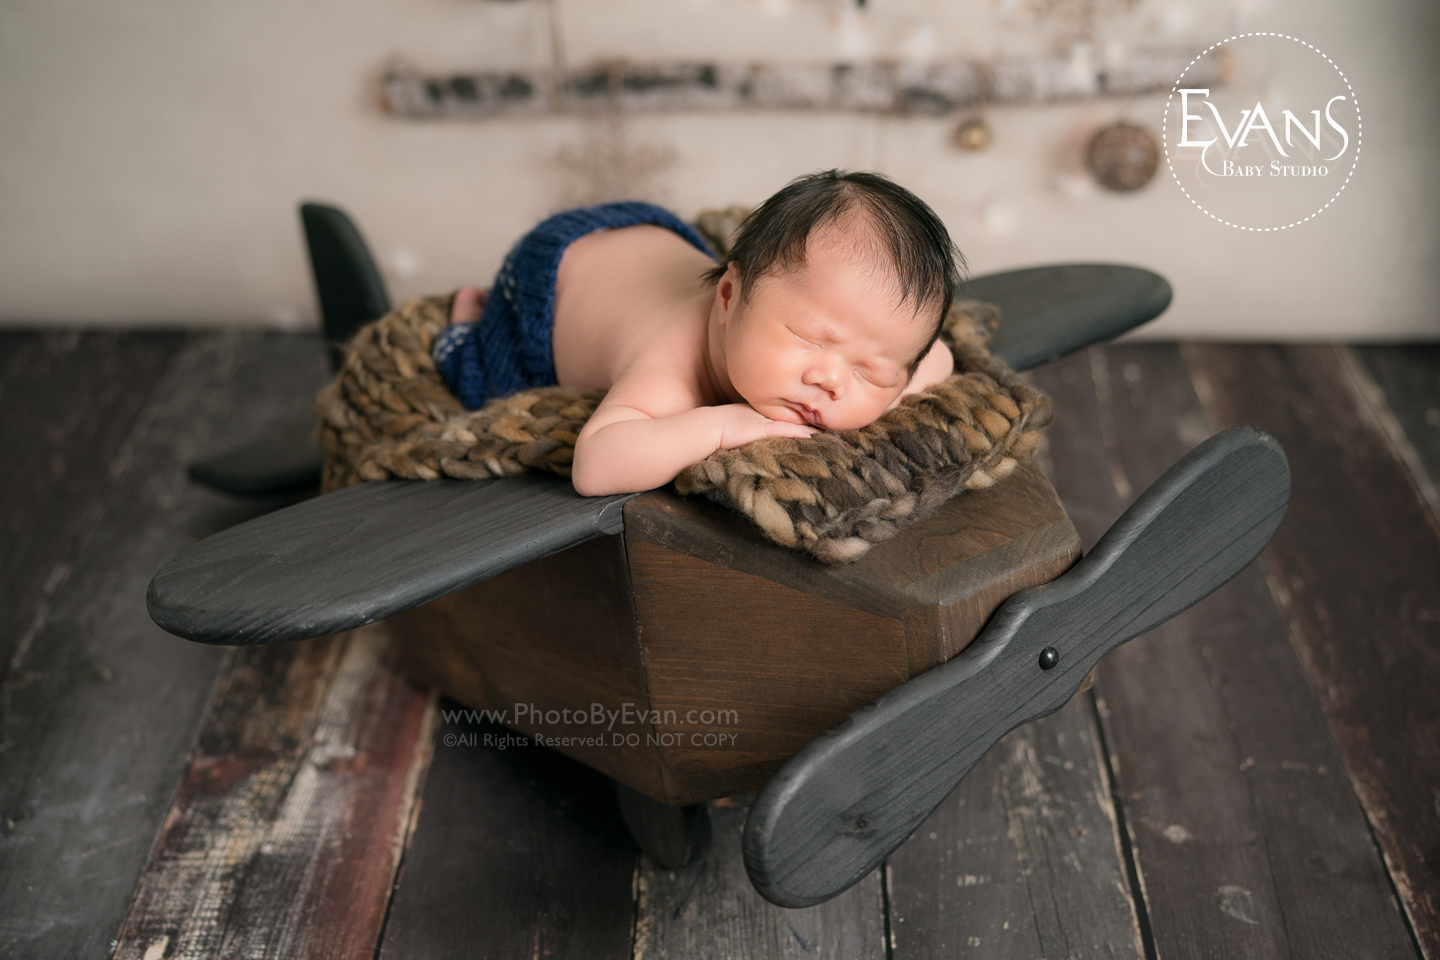 infant photography, newborn photography, newborn hong kong, newborn photography hong kong, baby studio, baby photography, newborn studio, newborn baby photography, baby studio, newborn studio, newborn photo, natural light, 香港嬰兒攝影, 香港初生嬰兒, 初生嬰兒, 初生嬰兒攝影,嬰兒影樓,嬰兒攝影, 初生嬰兒攝影, newborn 攝影, newborn 影樓, newborn, 自然光, newborn PHOTO, newborn拍攝, 初生攝影, 初生嬰兒攝影師, 初生影樓, 初生嬰兒影樓, 香港 newborn 影樓, 香港初生嬰兒攝影, 一個月嬰兒攝影, one month baby